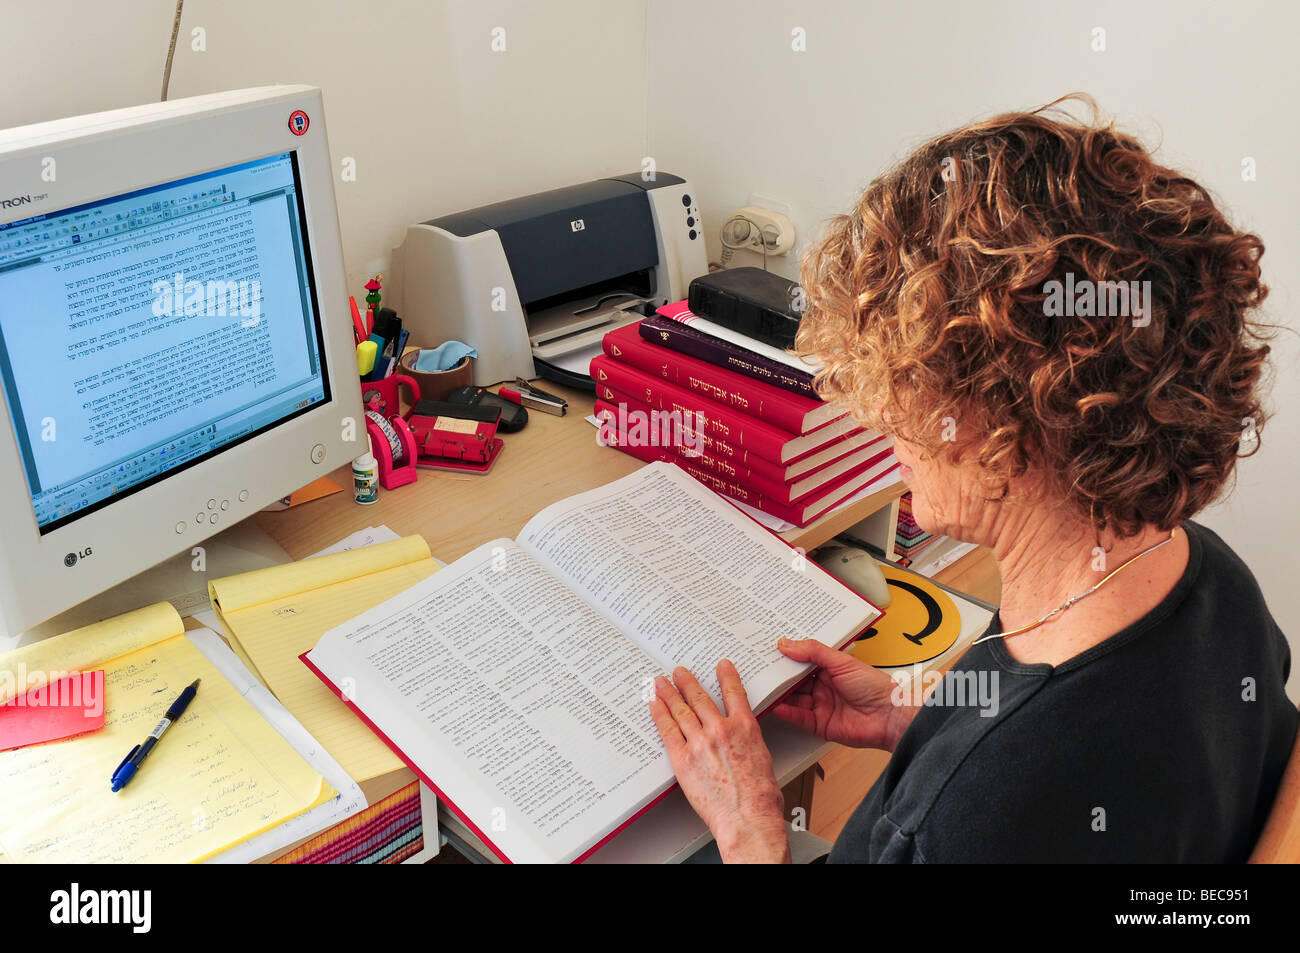 Female Copy editor Working In Front Of A Computer Editing An     nuoweitech com Wallace Academic Editing